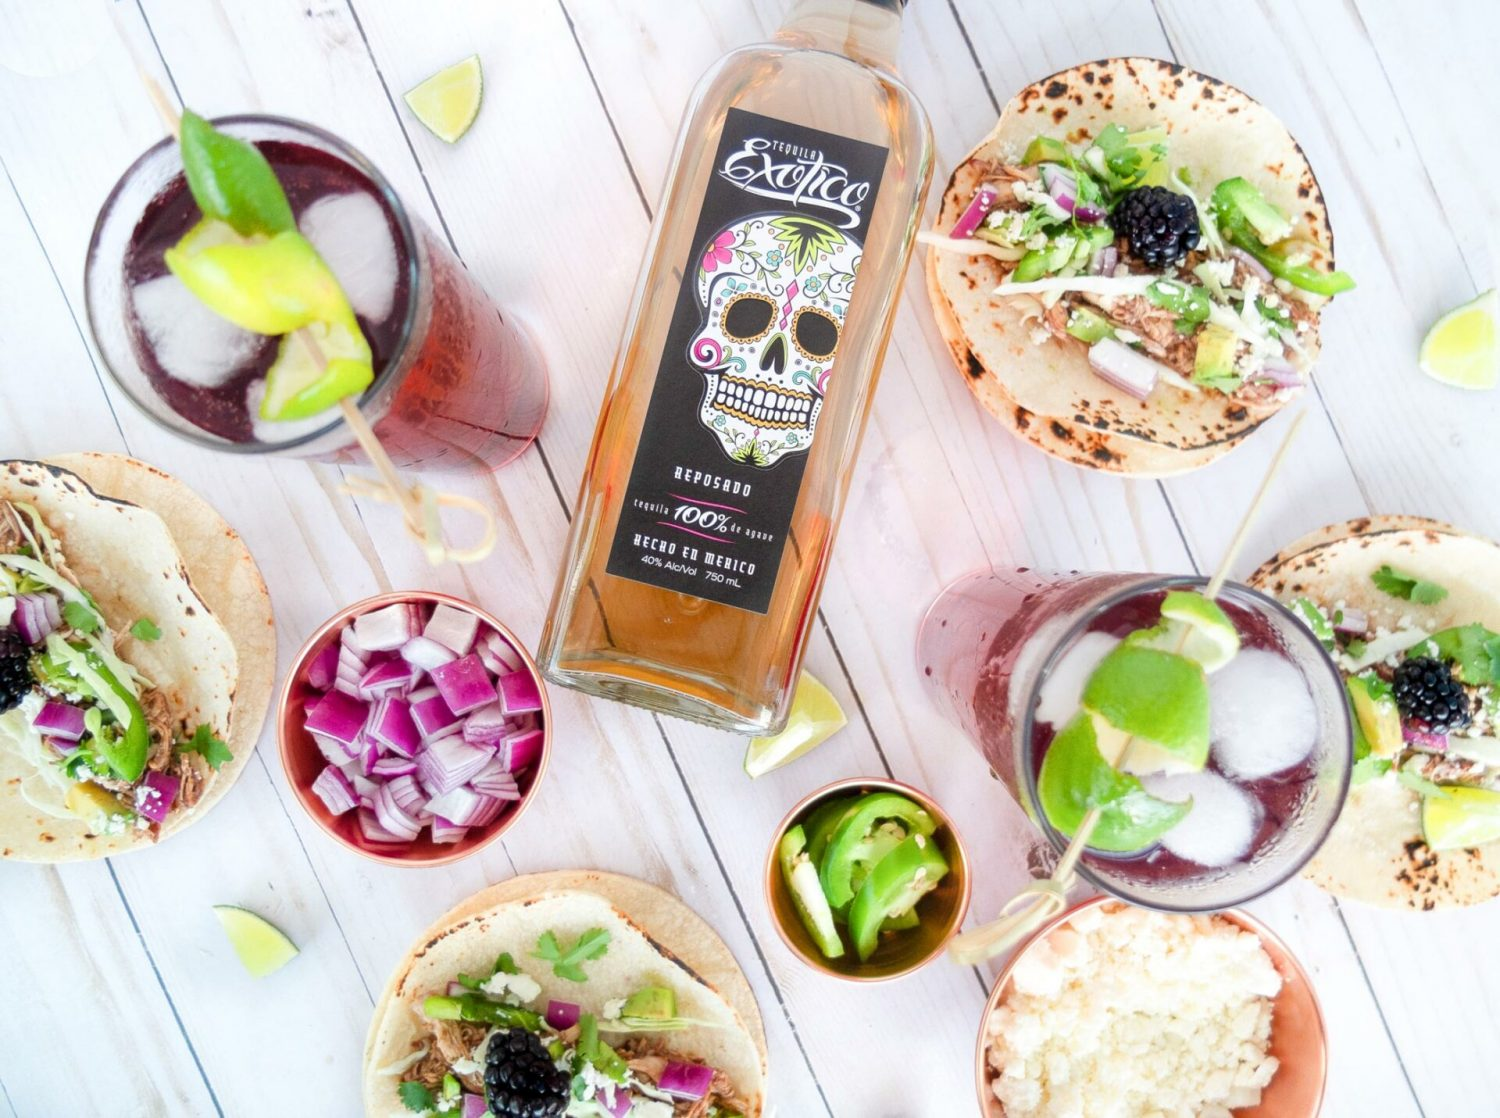 We're pairing the classic tequila cocktail El Diablo with theseThis classic tequila cocktail El Diablo paired with slow cooker Blackberry & Ginger Tacos. The El Diablo cocktail is a black current and ginger beer drink that's easy to sip. Have it along side these chicken tacos made in a blackberry and ginger sauce makes for a little spicy, sweet, and salty. Recipe for those 21+. #slowcooker #recipeoftheday #tequila #cocktail #cocktailrecipe #foodpairing #dinner #dinnerrecipe #tacotuesday #tacoparty #makeitexotico #adslow cooker Blackberry & Ginger Tacos. The El Diablo cocktail is a black current and ginger beer drink that's easy to sip. Have it along side these chicken tacos made in a blackberry and ginger sauce makes for the ultimate pairing of a little spicy, sweet, and salty. Recipe for those 21+. #slowcooker #recipeoftheday #tequila #cocktail #cocktailrecipe #foodpairing #dinner #dinnerrecipe #taco #tacotuesday #tacoparty #makeitexotico #sponsored